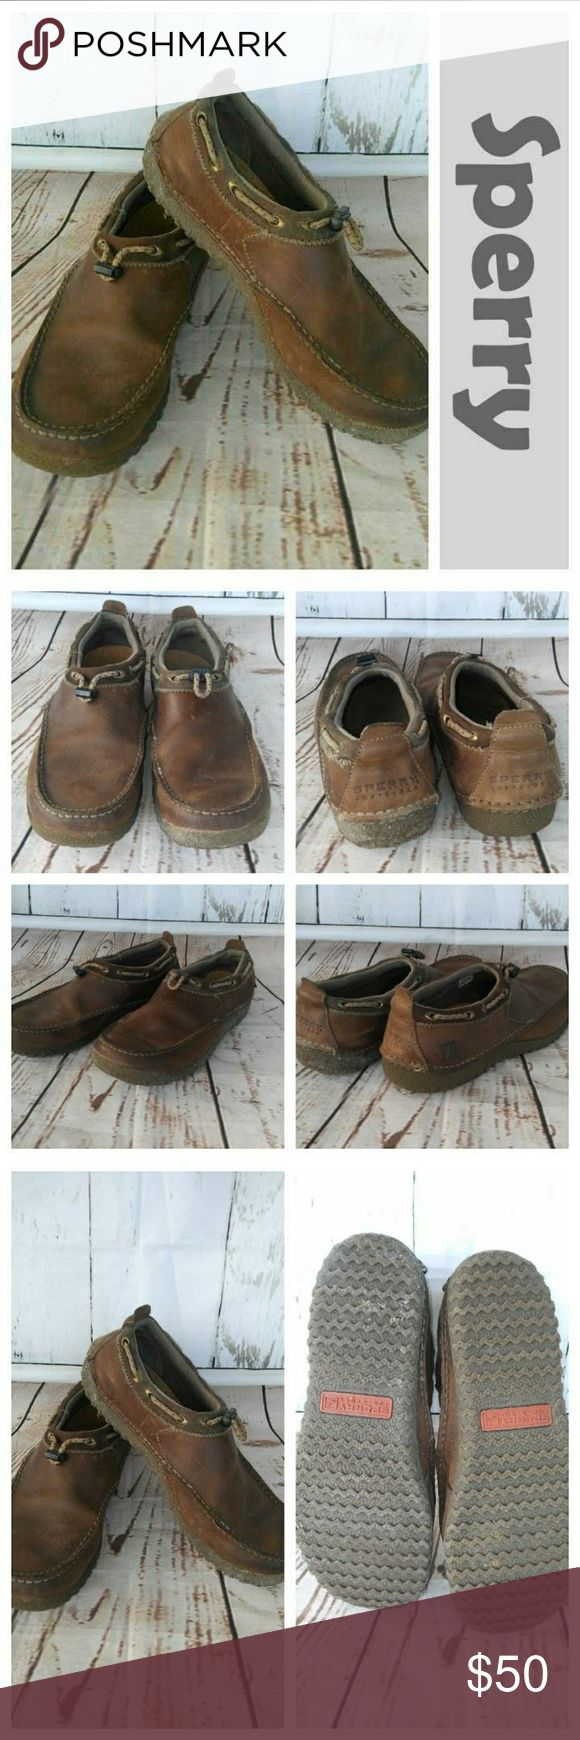 SPERRY boat shoes Brown SPERRY shoes Size 9m Sperry Shoes Boat Shoes